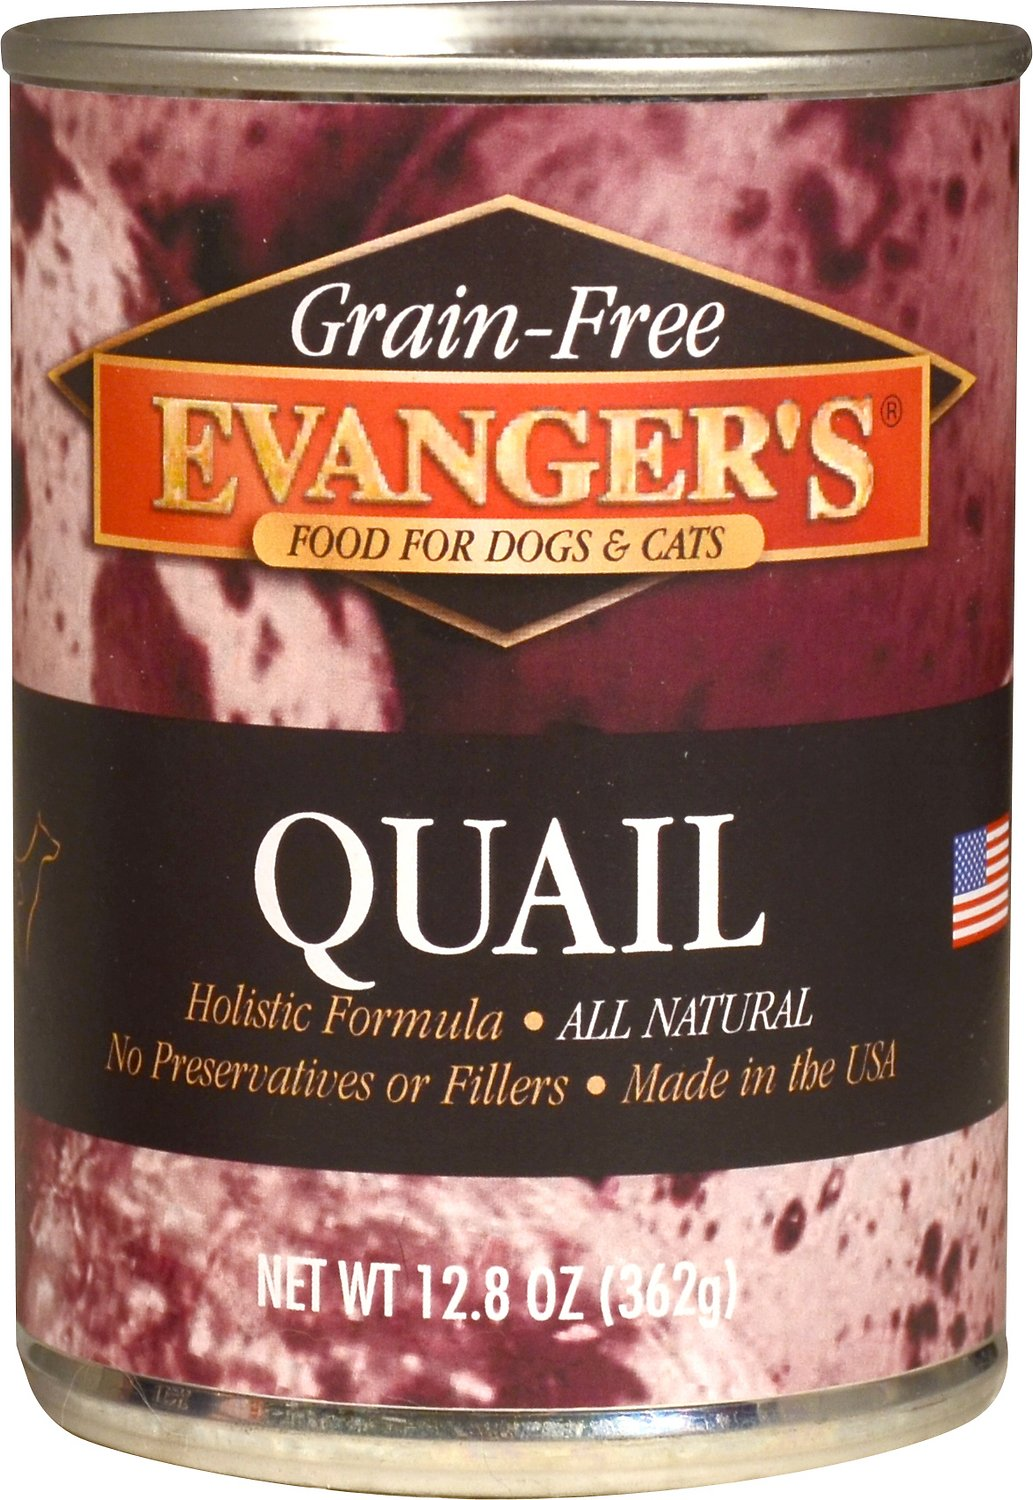 Evanger's Grain-Free Quail Canned Dog & Cat Food, 13-oz